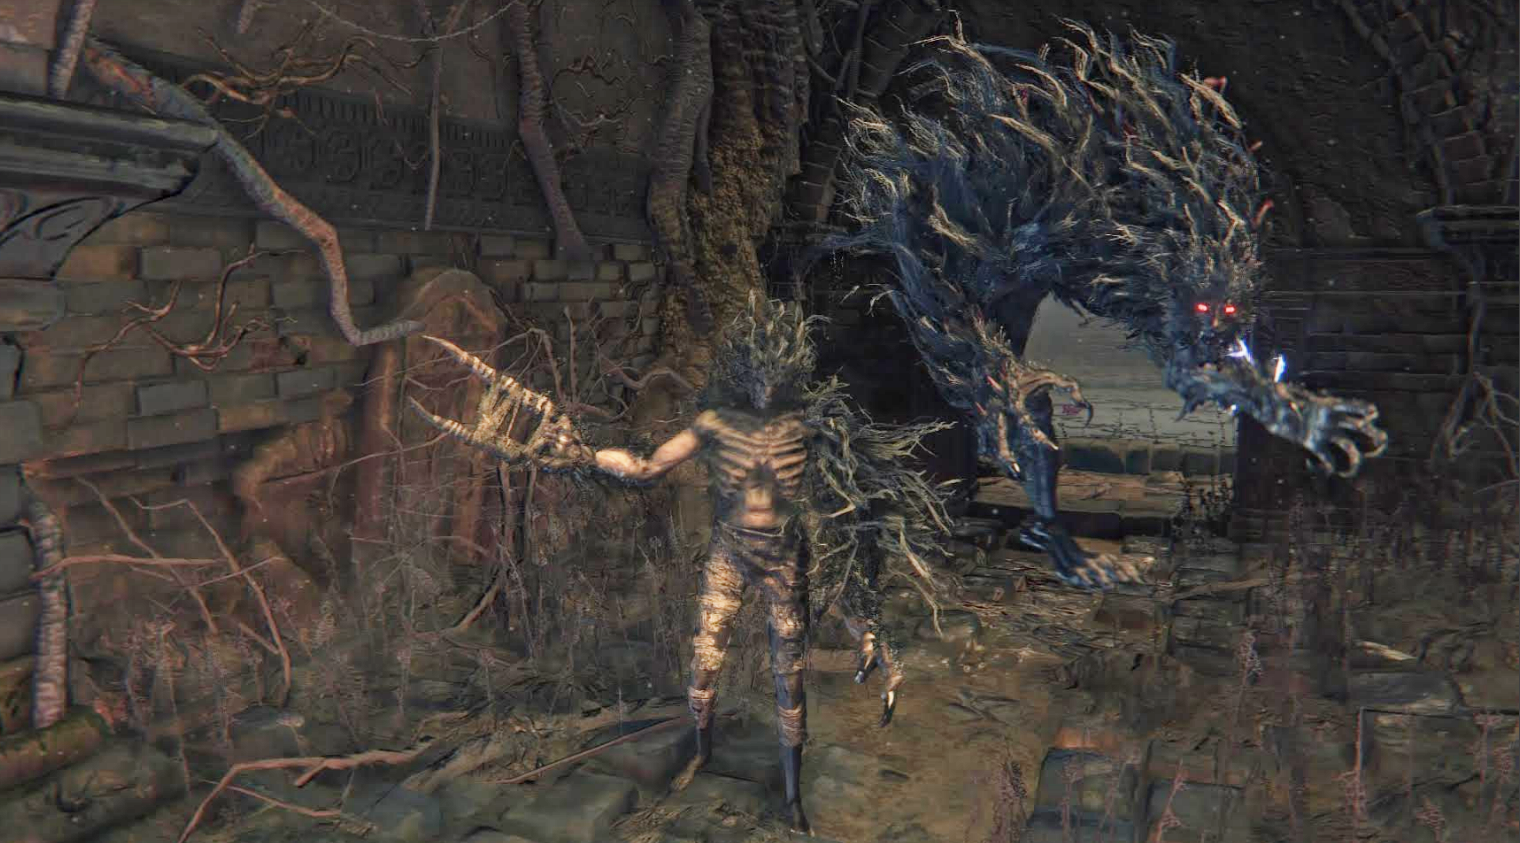 Bloodborne Players Are Still Looking For Secrets In The Chalice Dungeons